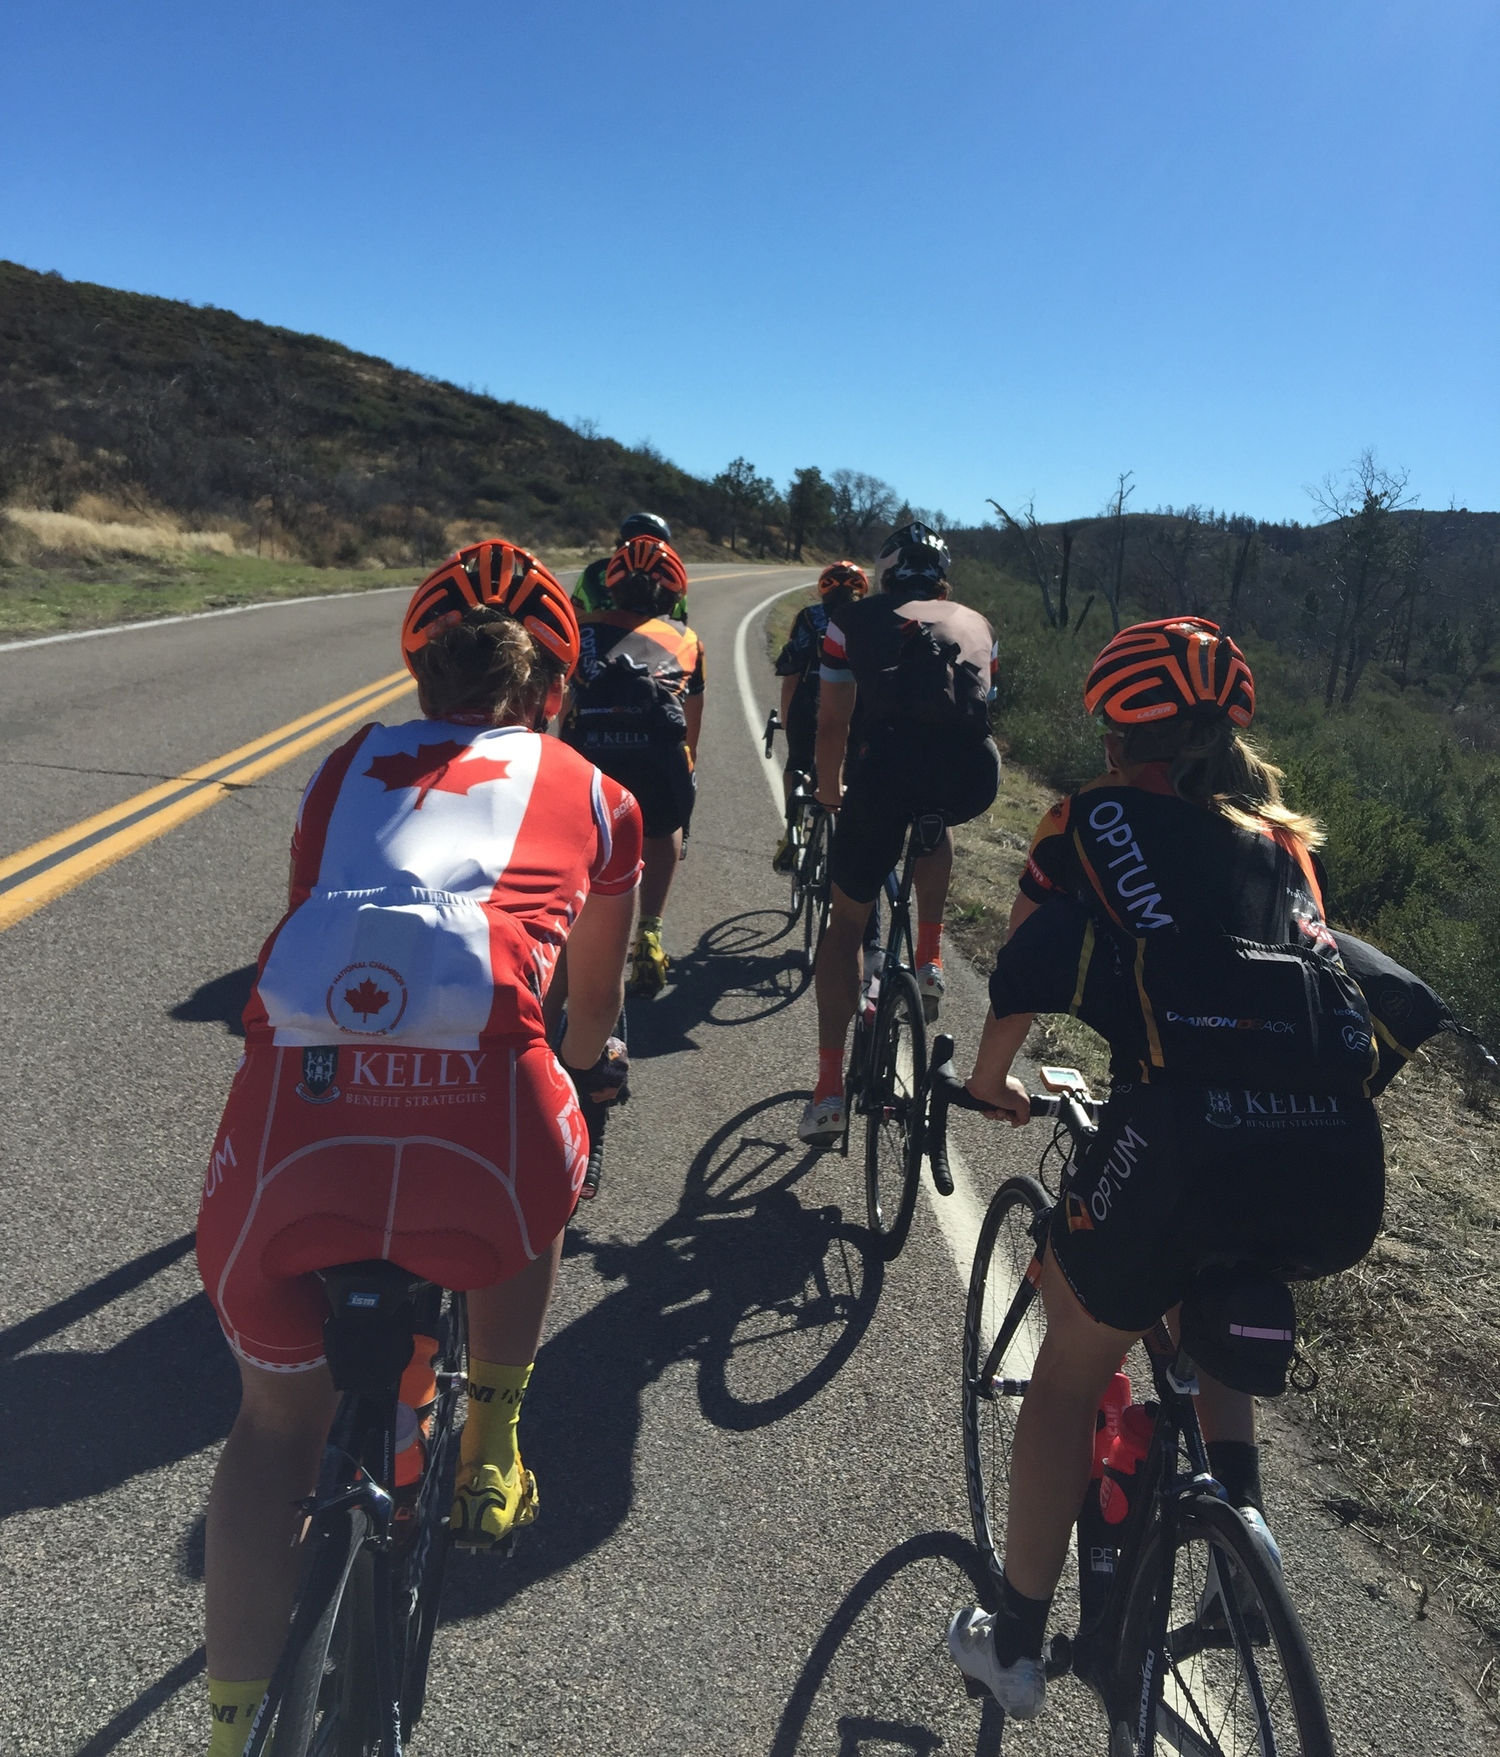 Riding Sunrise Highway with some of the women of Optum Pro Cycling during the Over the Top Cycling Camp last December.